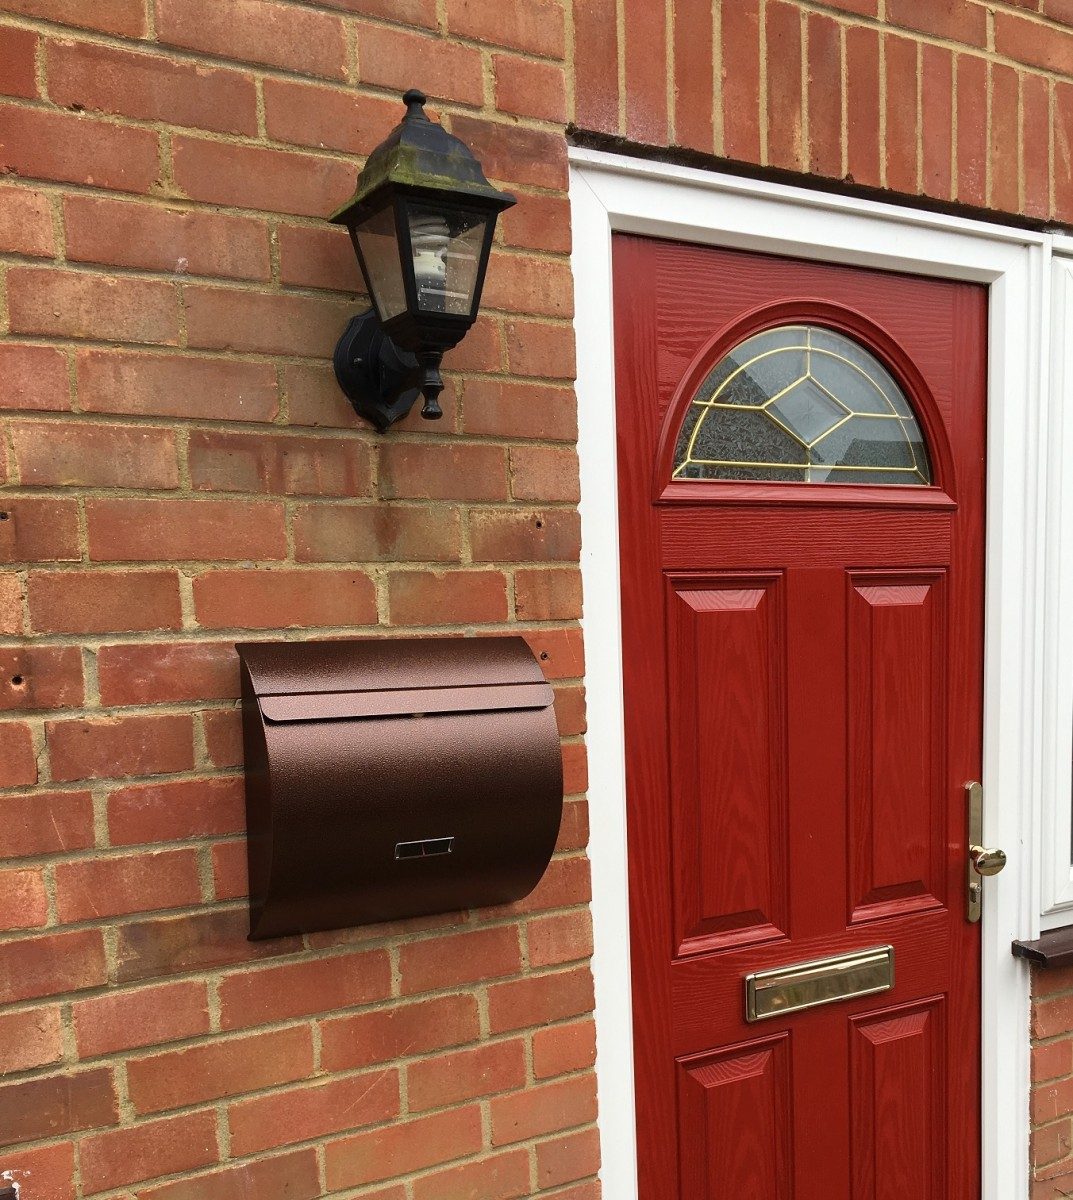 wa1 wall mounted curved shape letterbox : door letterbox - Pezcame.Com